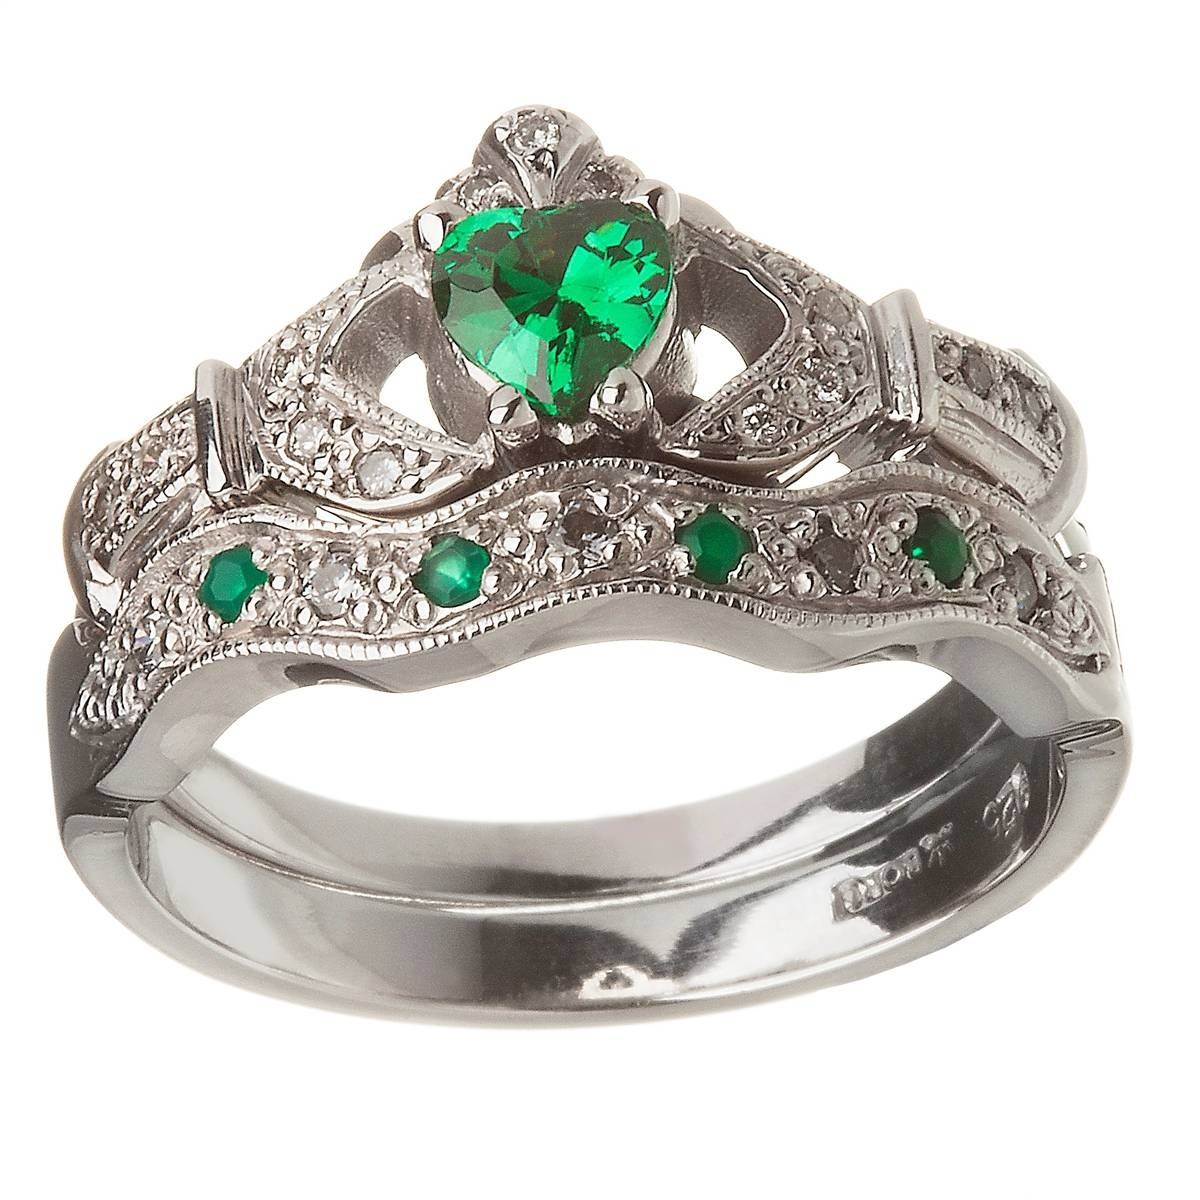 14k White Gold Emerald Set Heart Claddagh Ring & Wedding Ring Set Pertaining To Claddagh Engagement Rings (View 9 of 15)